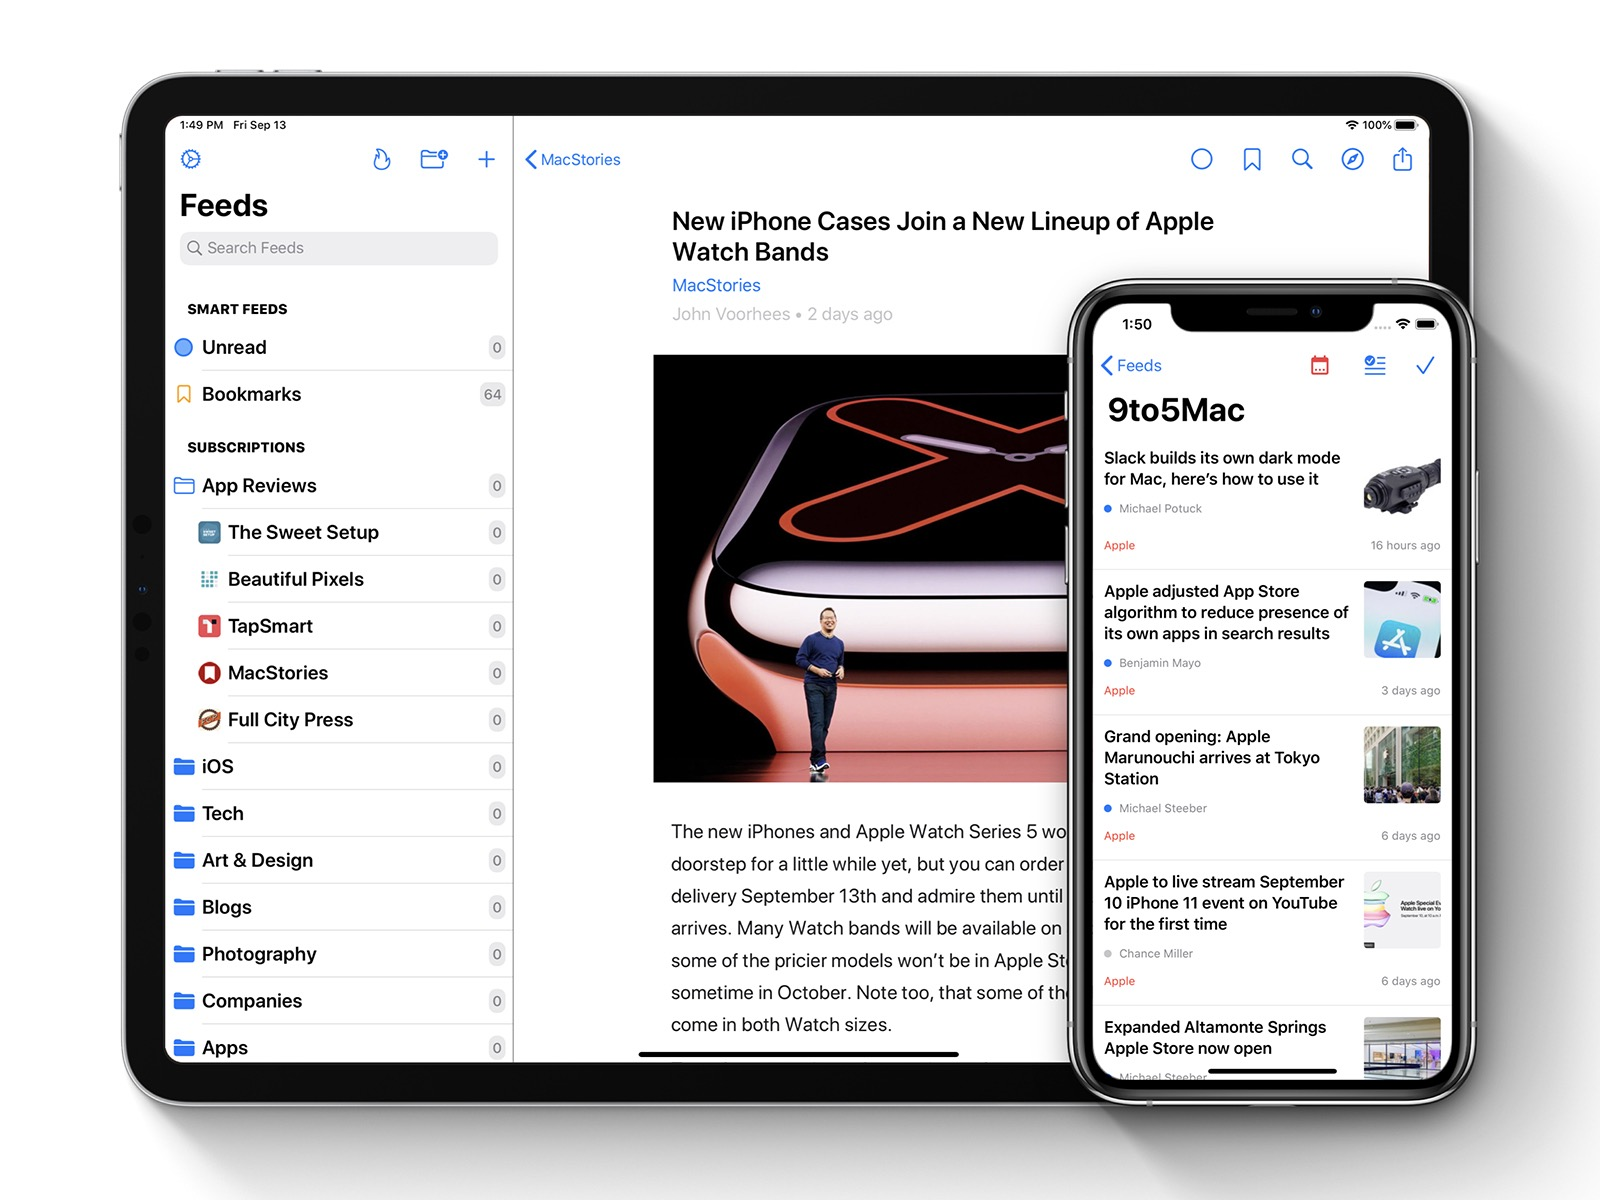 iPad: Article Reader. iPhone: Feed's Articles List.